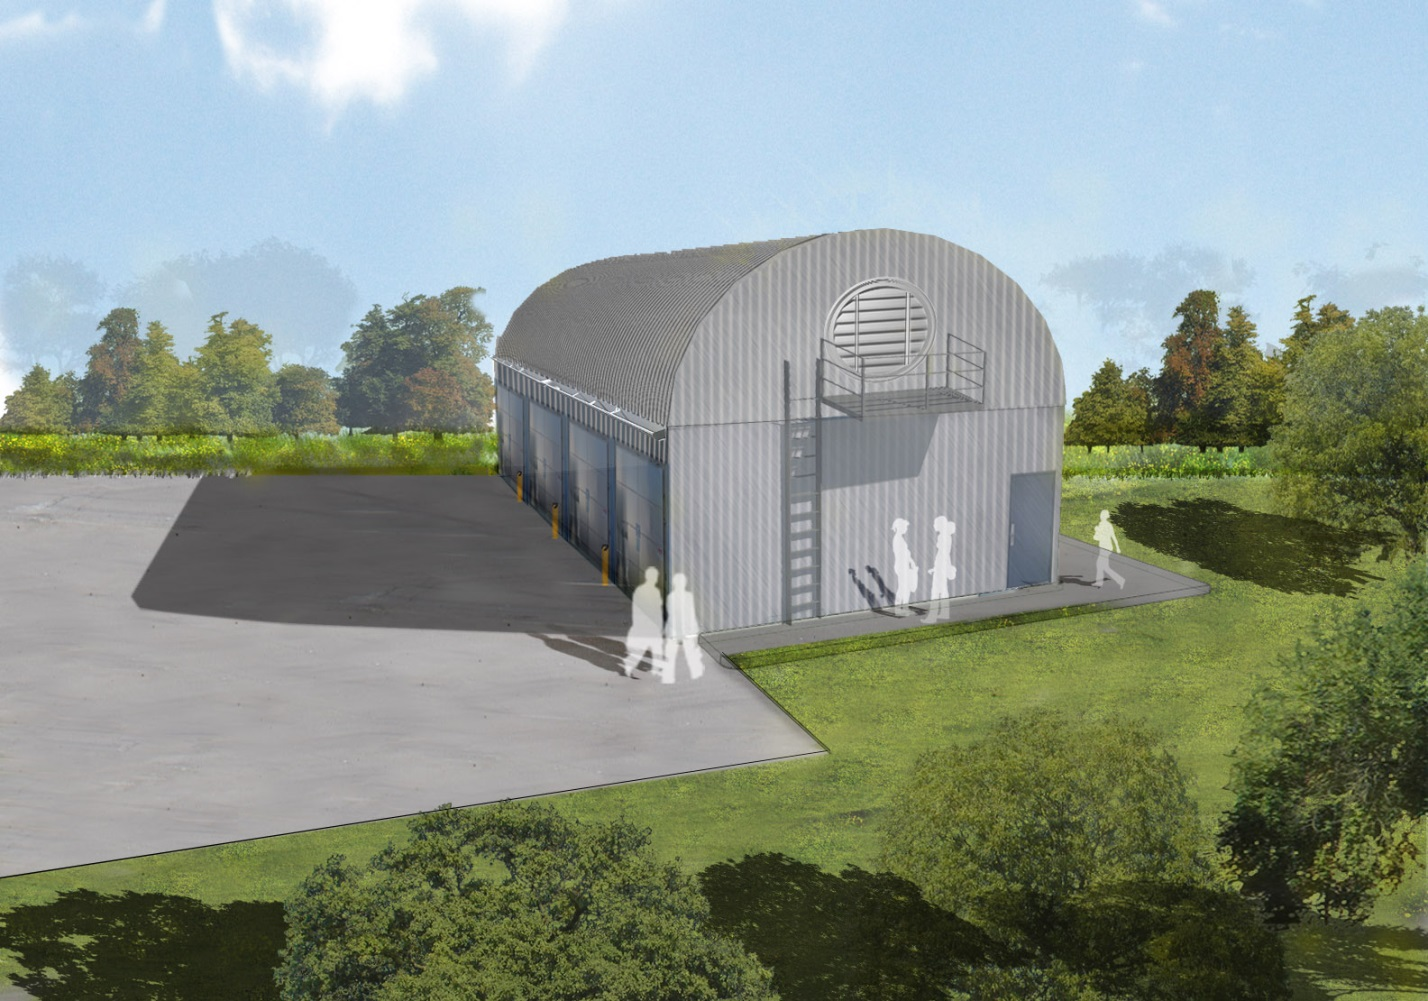 project_505_body_Biodigester_image1